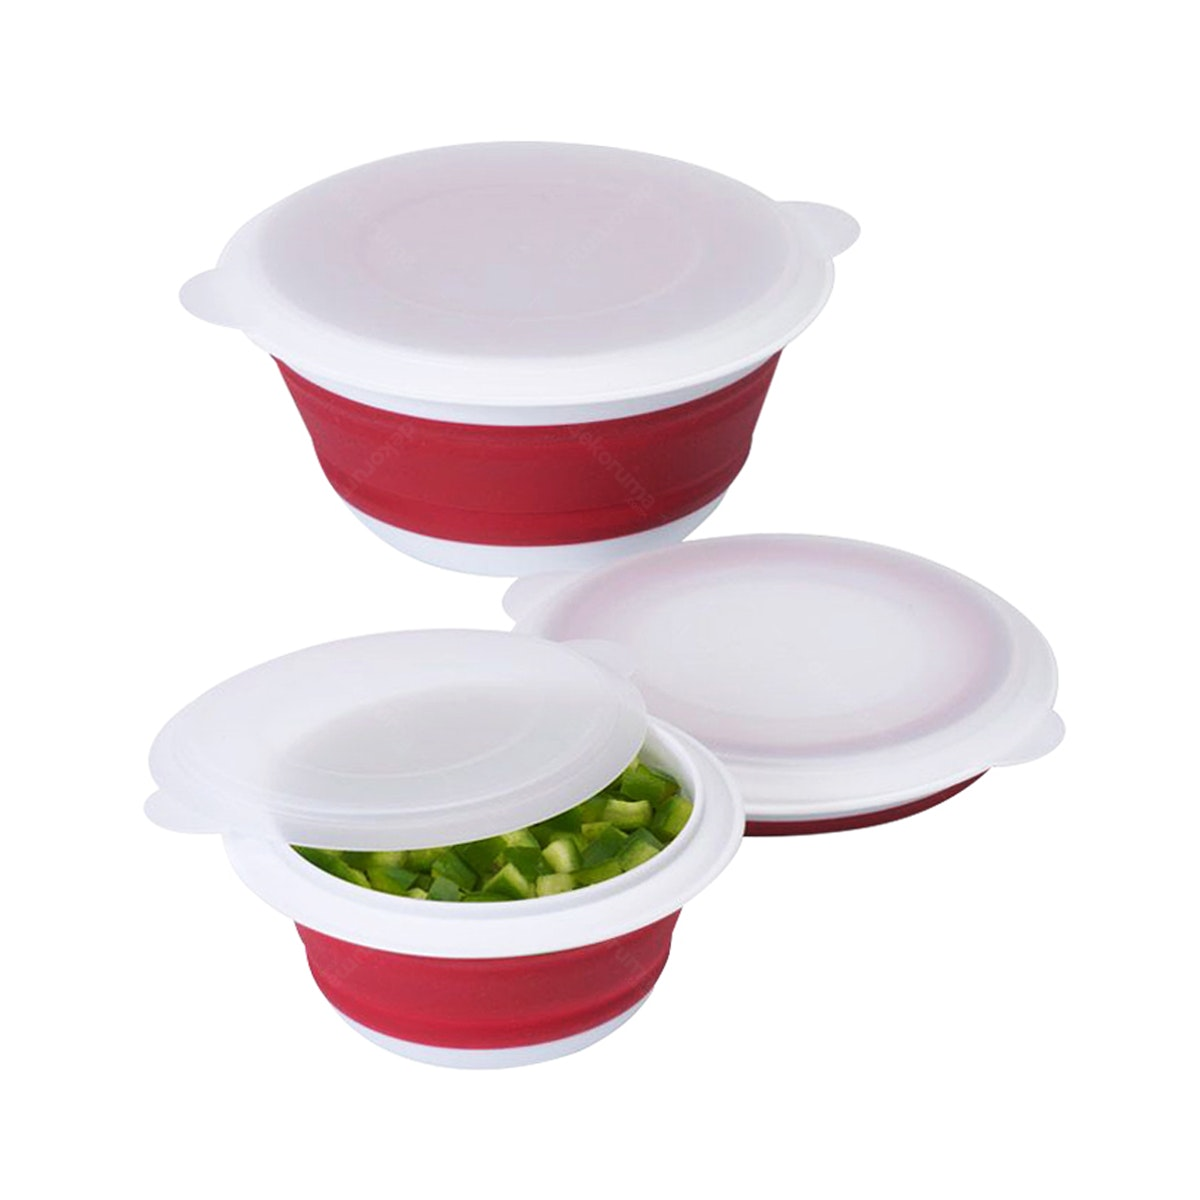 Cooks Habit Progressive Set Of 3 Collapsible Bowl Red